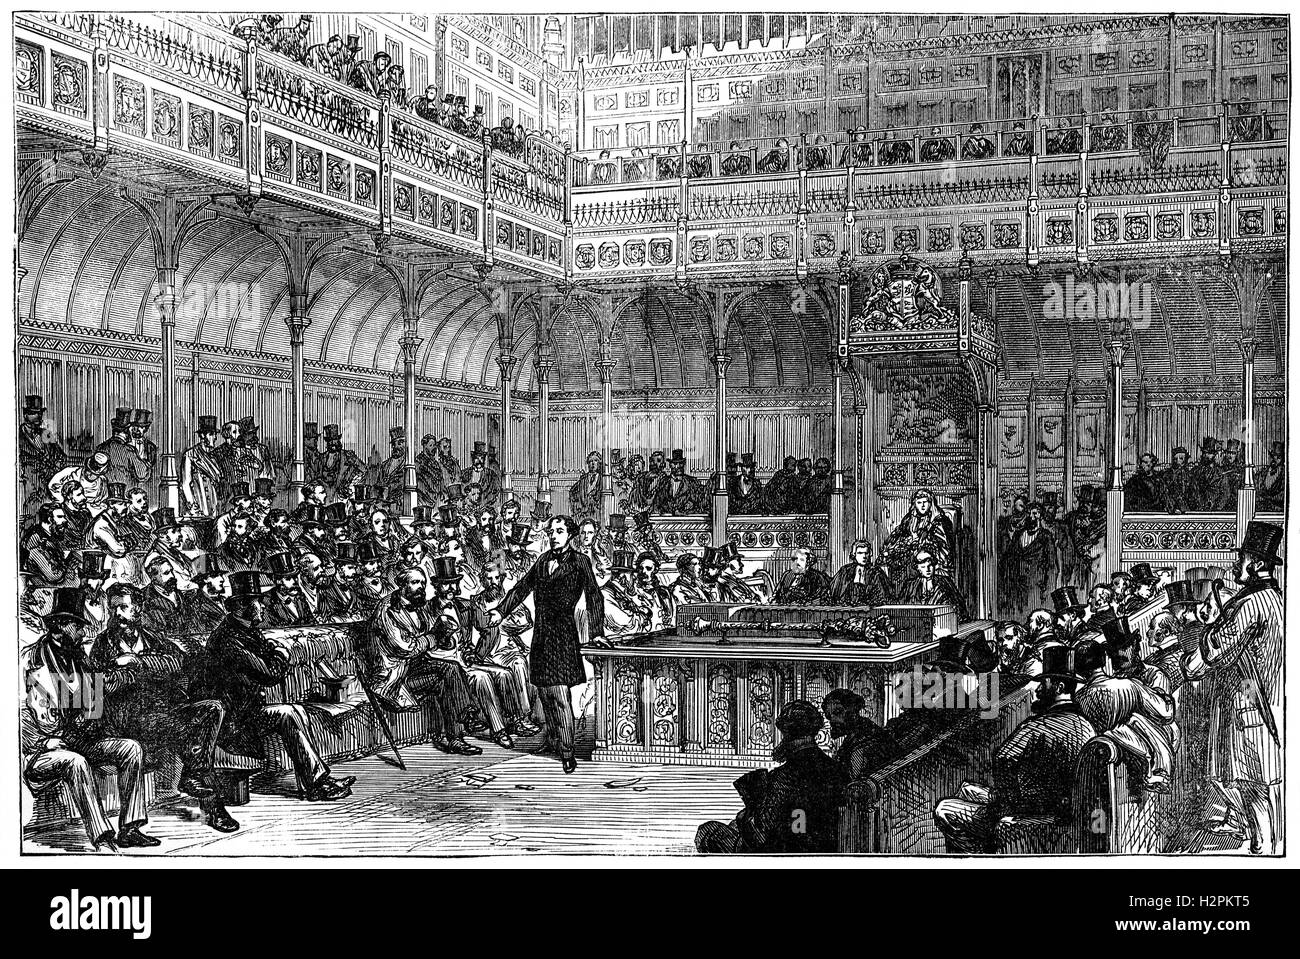 Prime Minister Benjamin Disraeli intoducing the Representation of the People Act 1867, (known informally as the Stock Photo